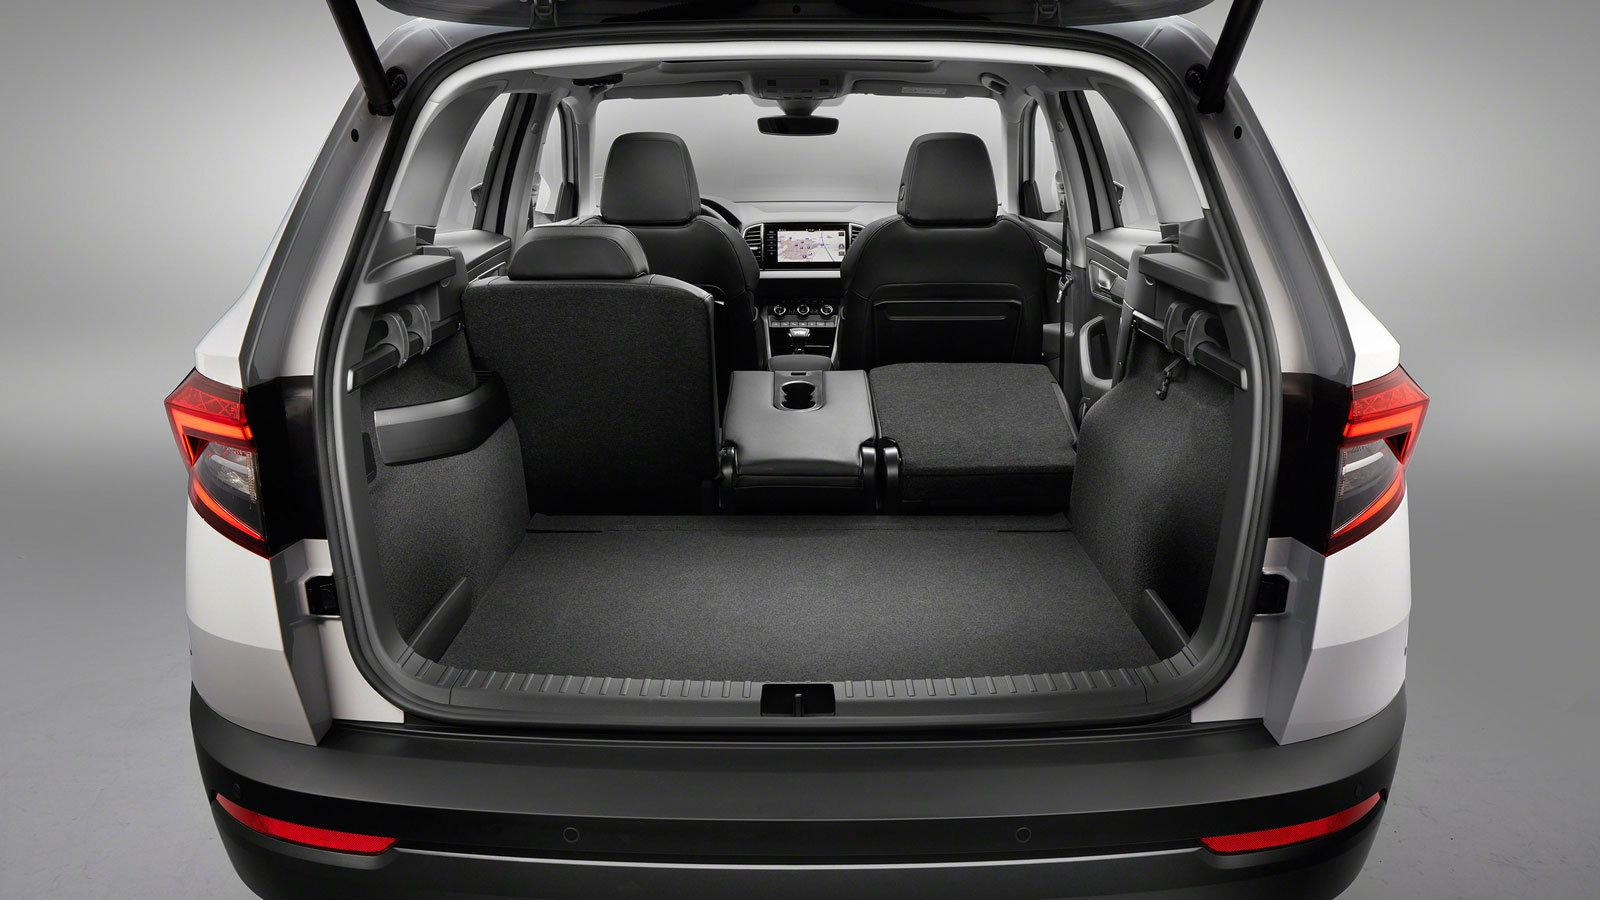 skoda karoq skoda. Black Bedroom Furniture Sets. Home Design Ideas